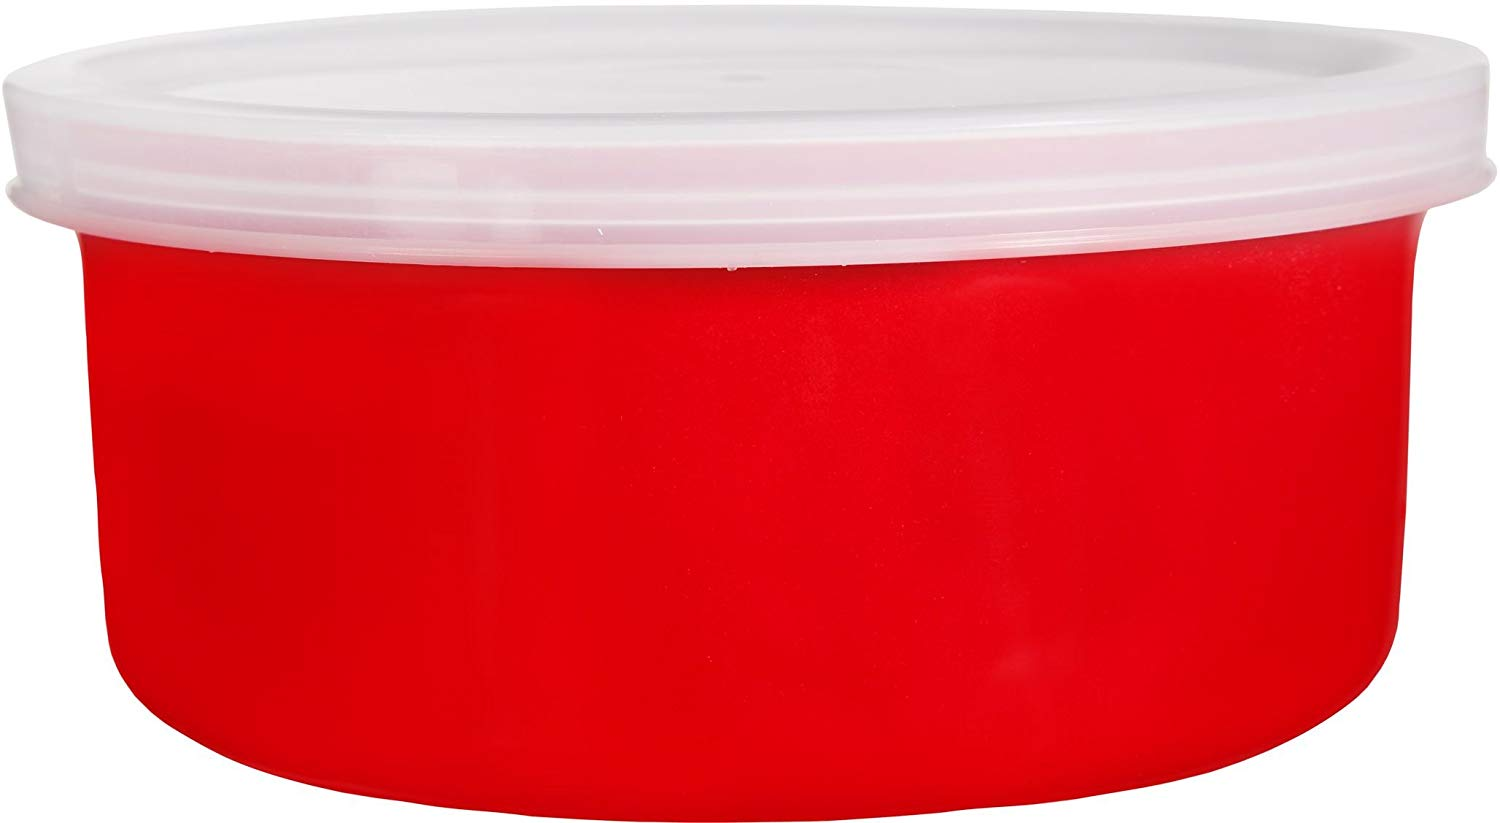 Home Essentials & Beyond 1 Round Ceramic Casserole Baker with Lid Baking Dish Roasting Lasagna Pan Red 16 Oz